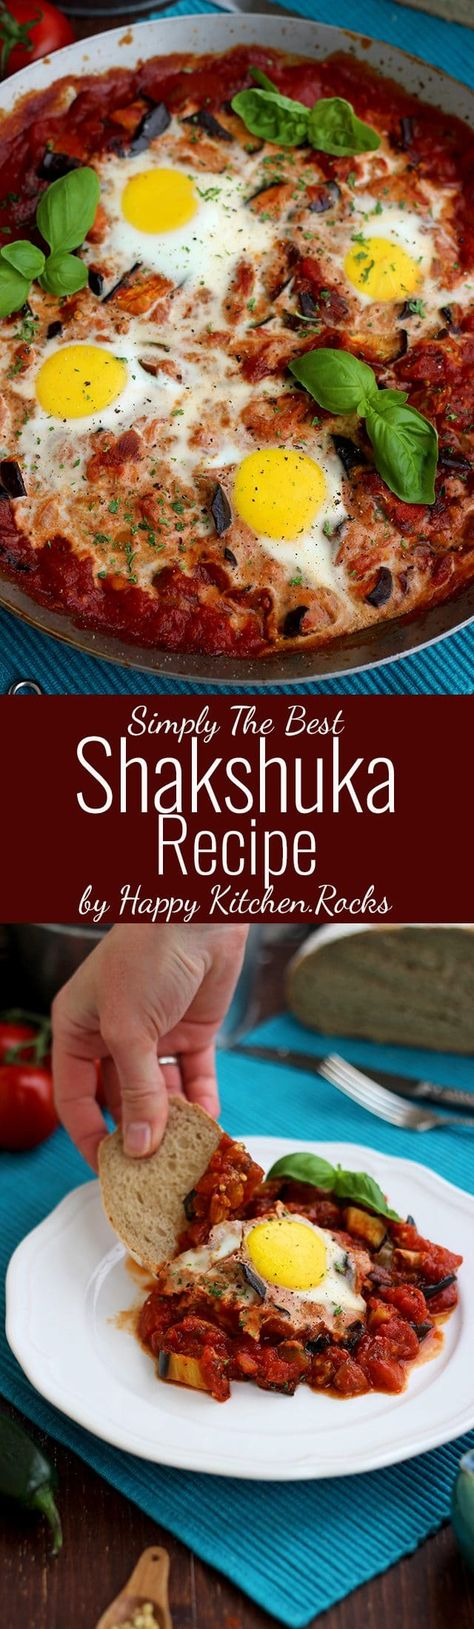 Foolproof Shakshuka Recipe: Eggs poached in spicy tomato-based veggie stew, baked to perfection, garnished with fresh herbs and served with crusty bread. Flavorsome, nourishing and healthy one-pot breakfast or dinner meal you will make over and over again! #flavosome #vegetarianrecipe #vegetarianfood #egg #deliciousmeal | happykitchen.rocks